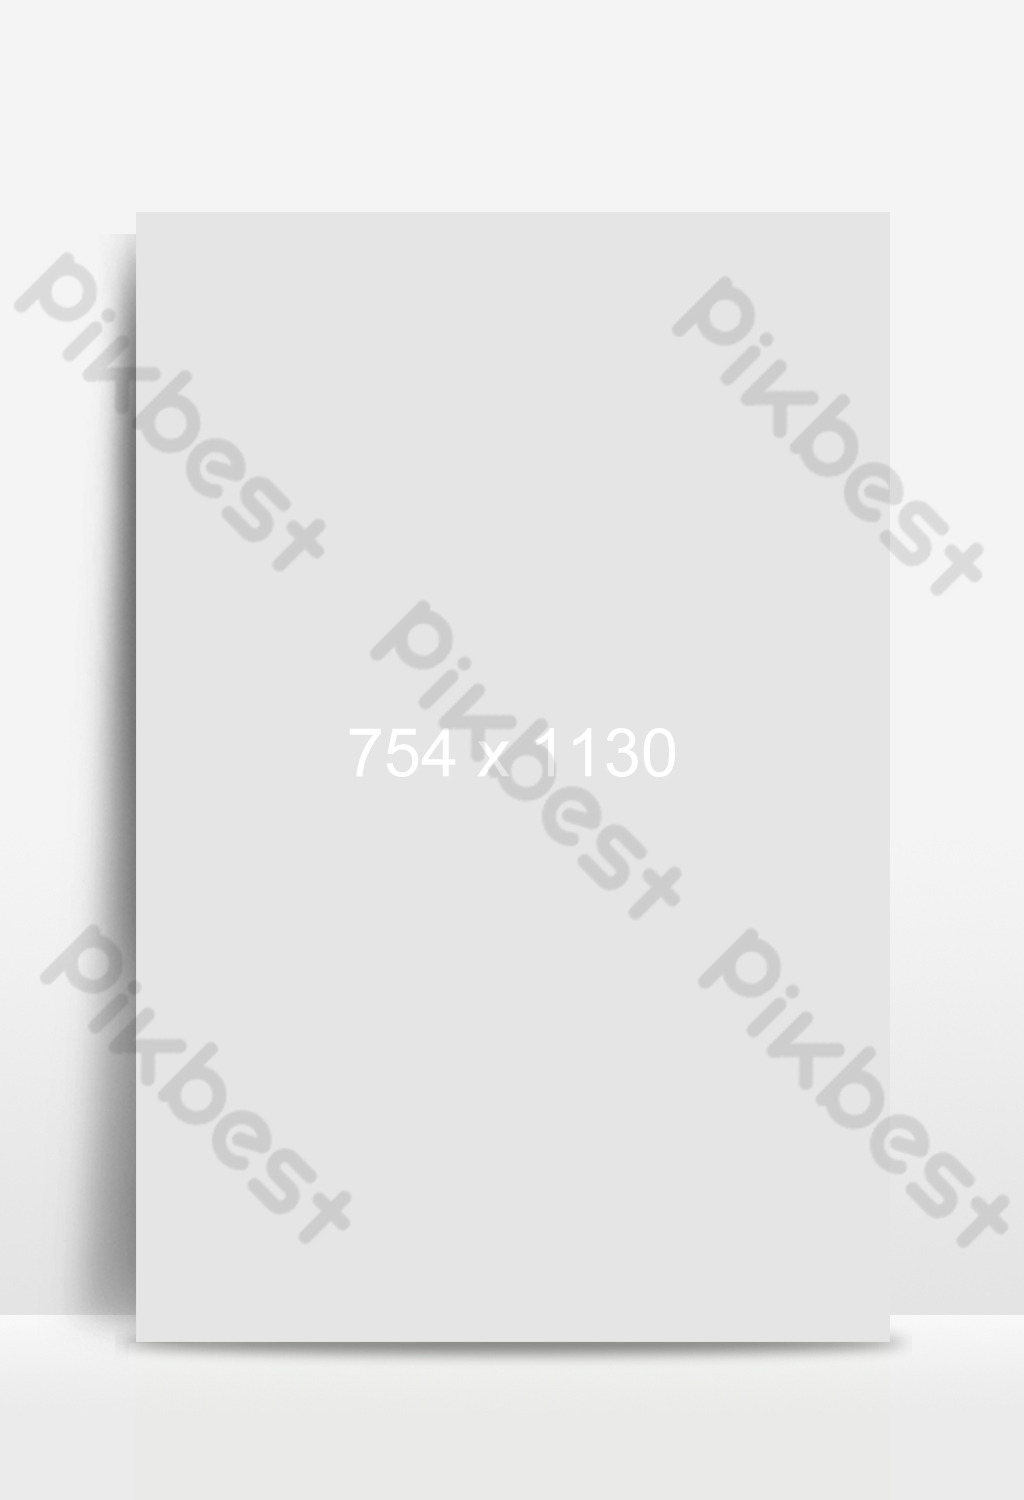 Fresh Cartoon Hand Drawn Cute Skin Care Beauty Poster Backgrounds Psd Free Download Pikbest